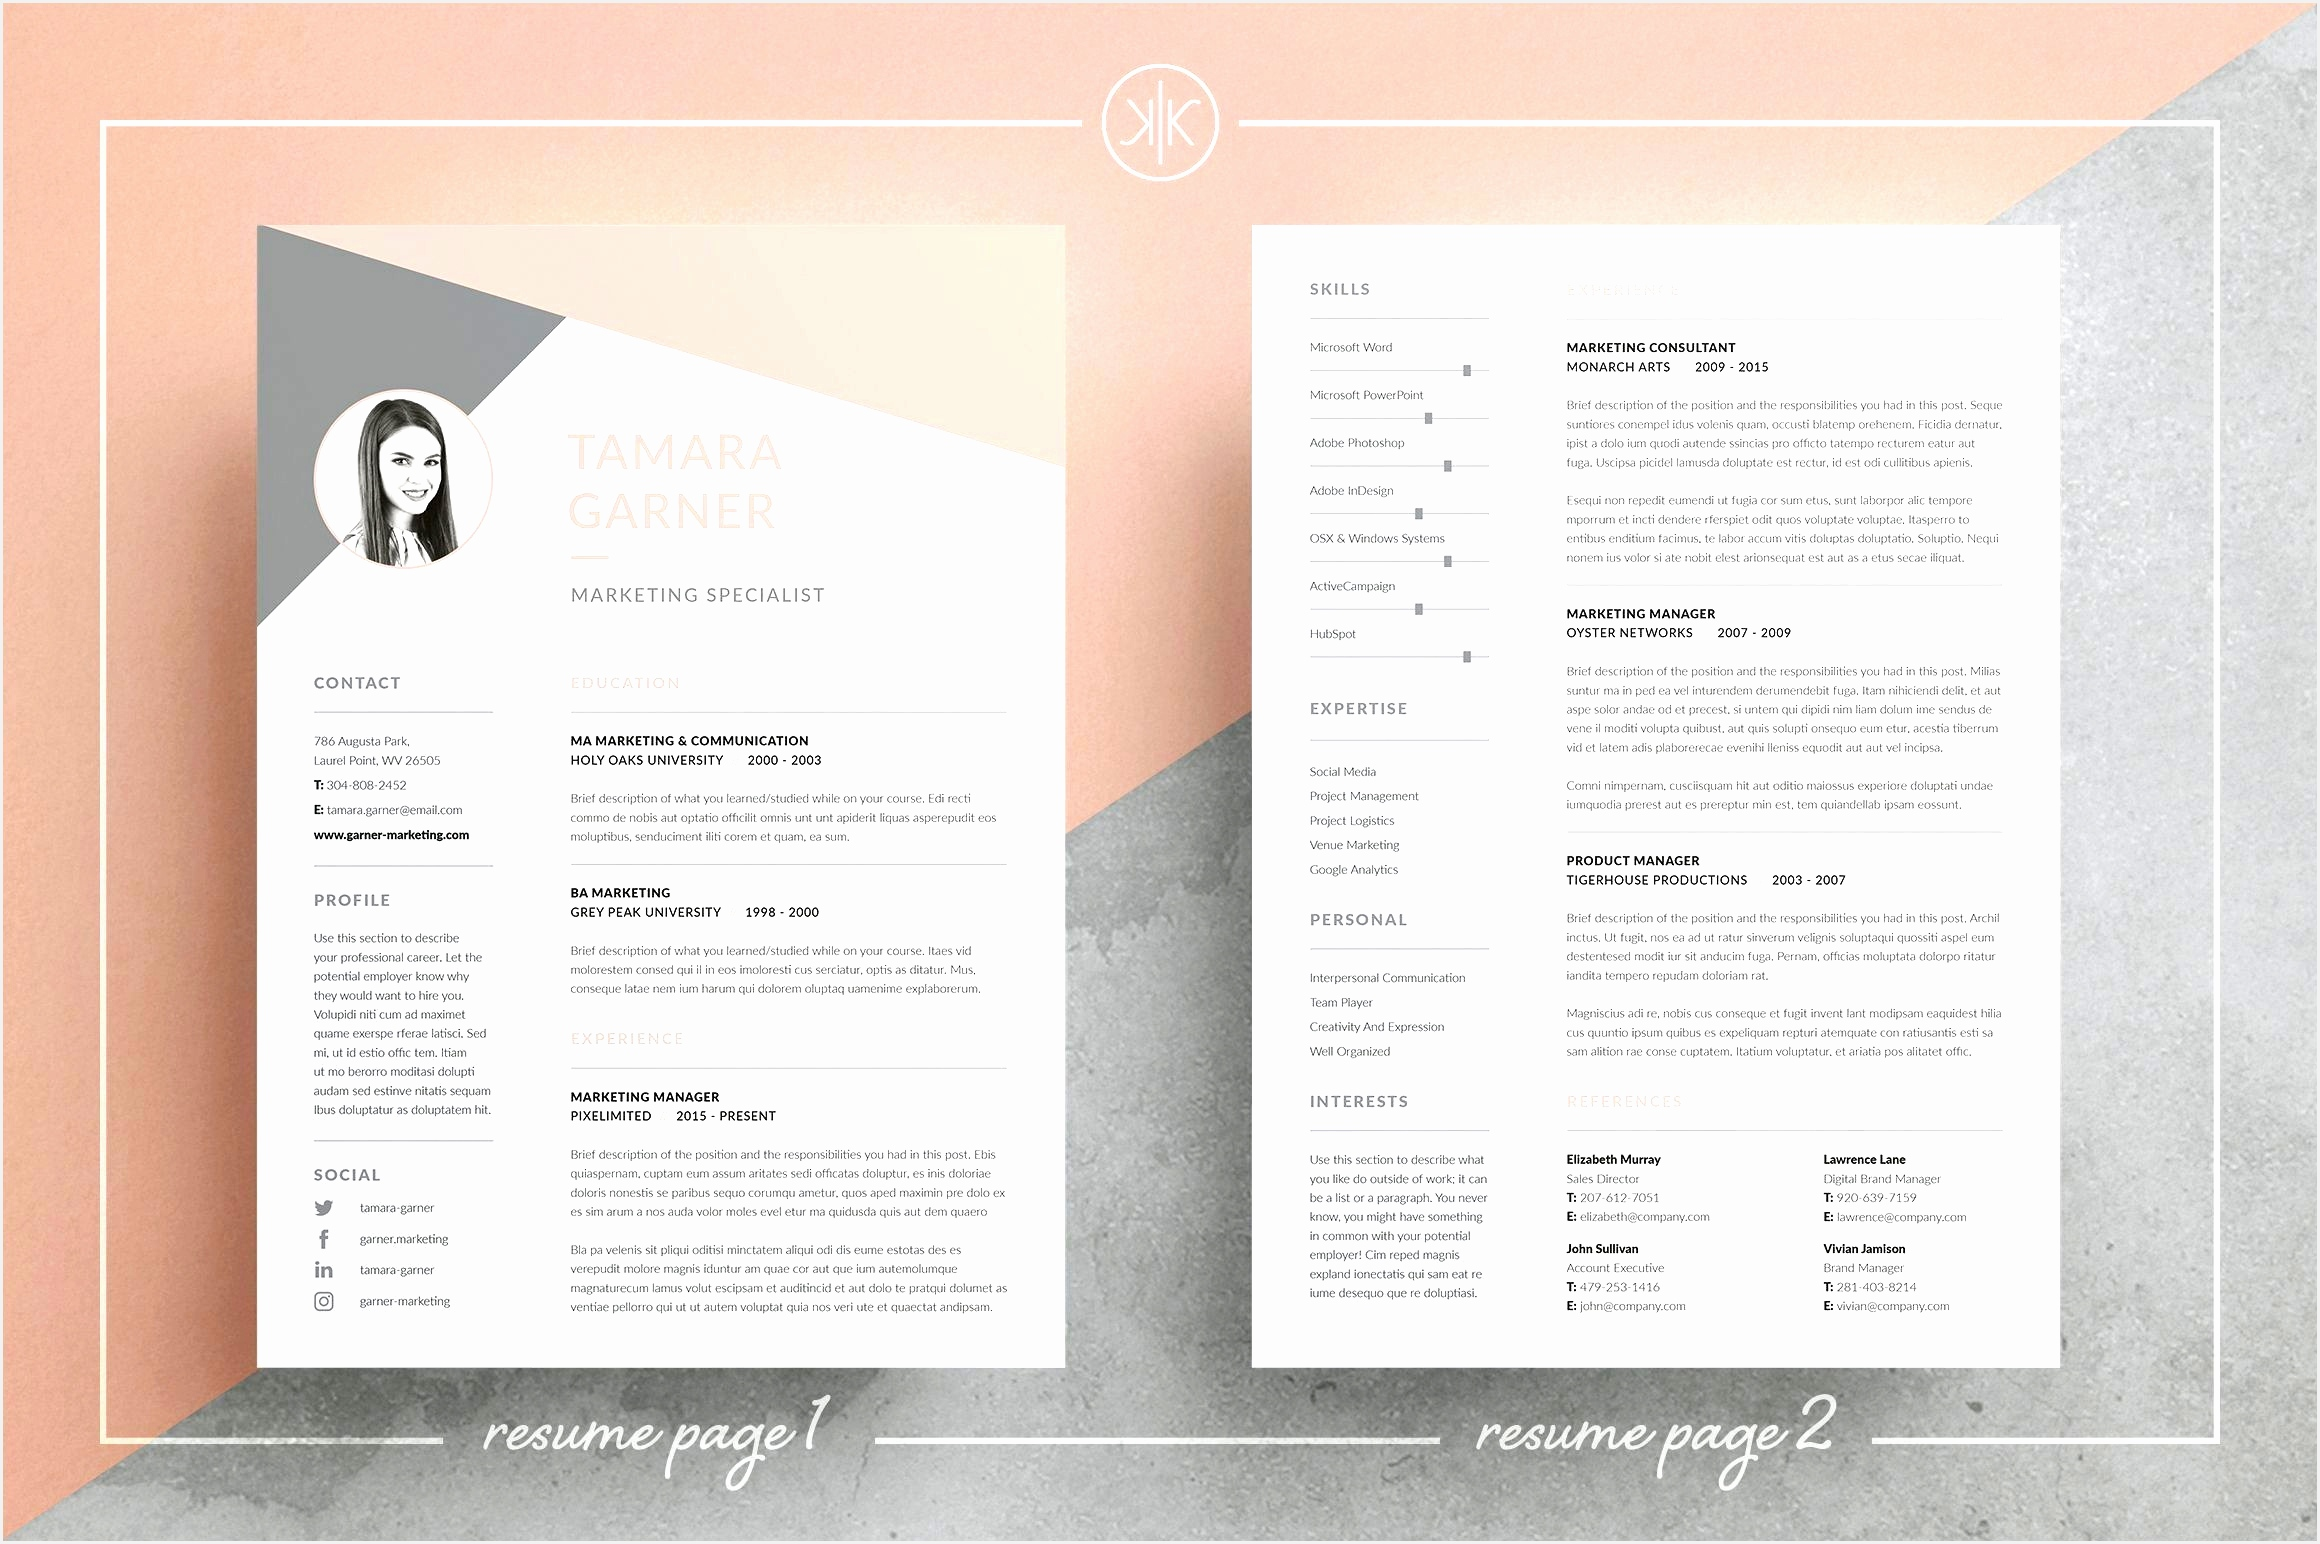 Where Can I Get A Free Resume Template Beautiful Ivoice Template 0d15442320